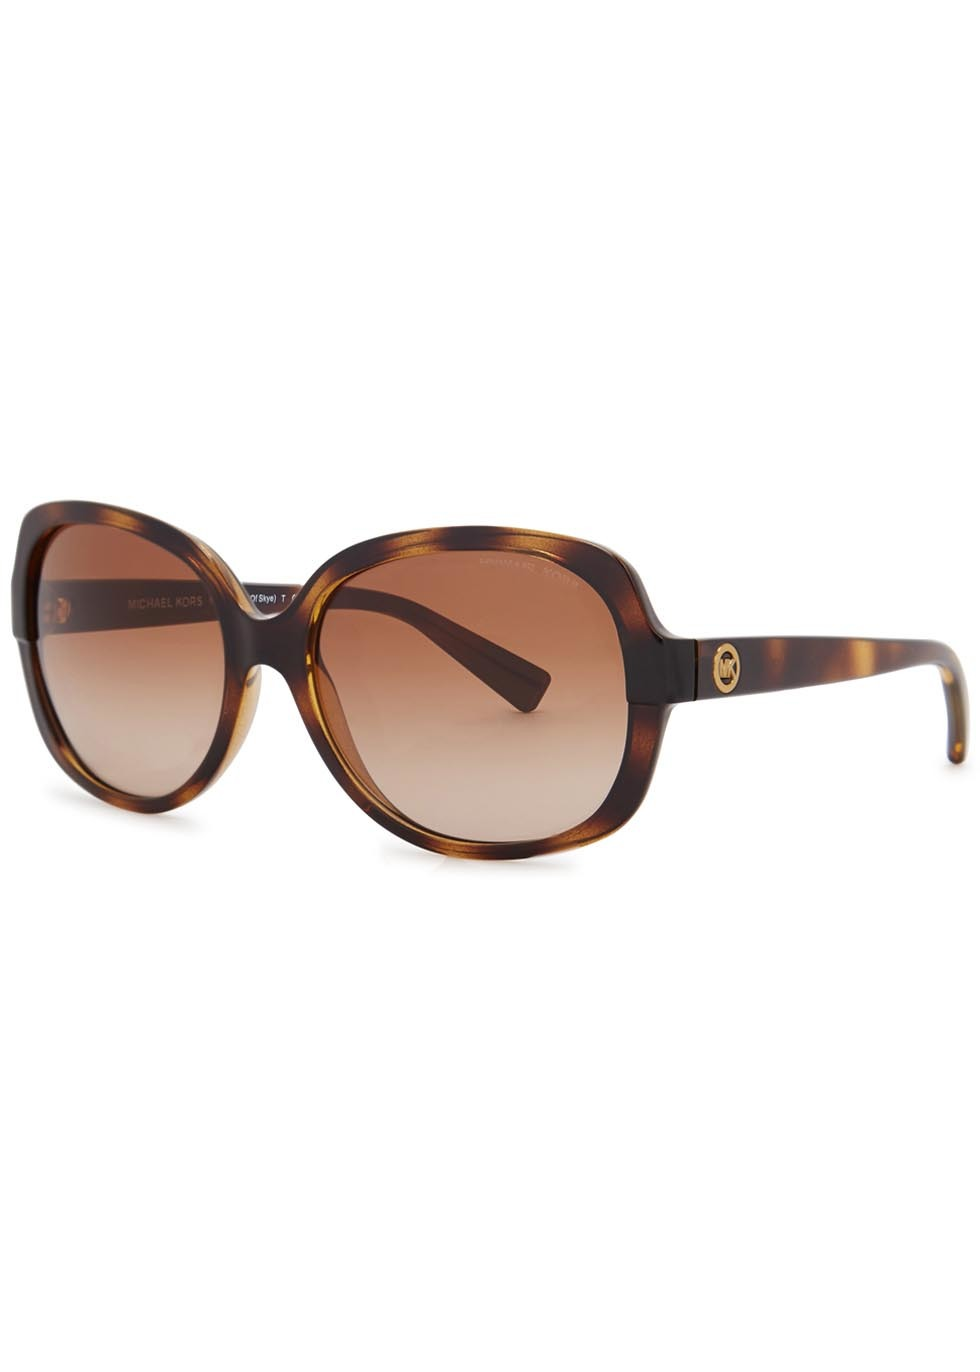 Isle Of Skye Square Frame Sunglasses - predominant colour: chocolate brown; secondary colour: tan; occasions: casual, holiday; style: square; size: large; material: plastic/rubber; pattern: tortoiseshell; finish: plain; season: s/s 2016; wardrobe: basic